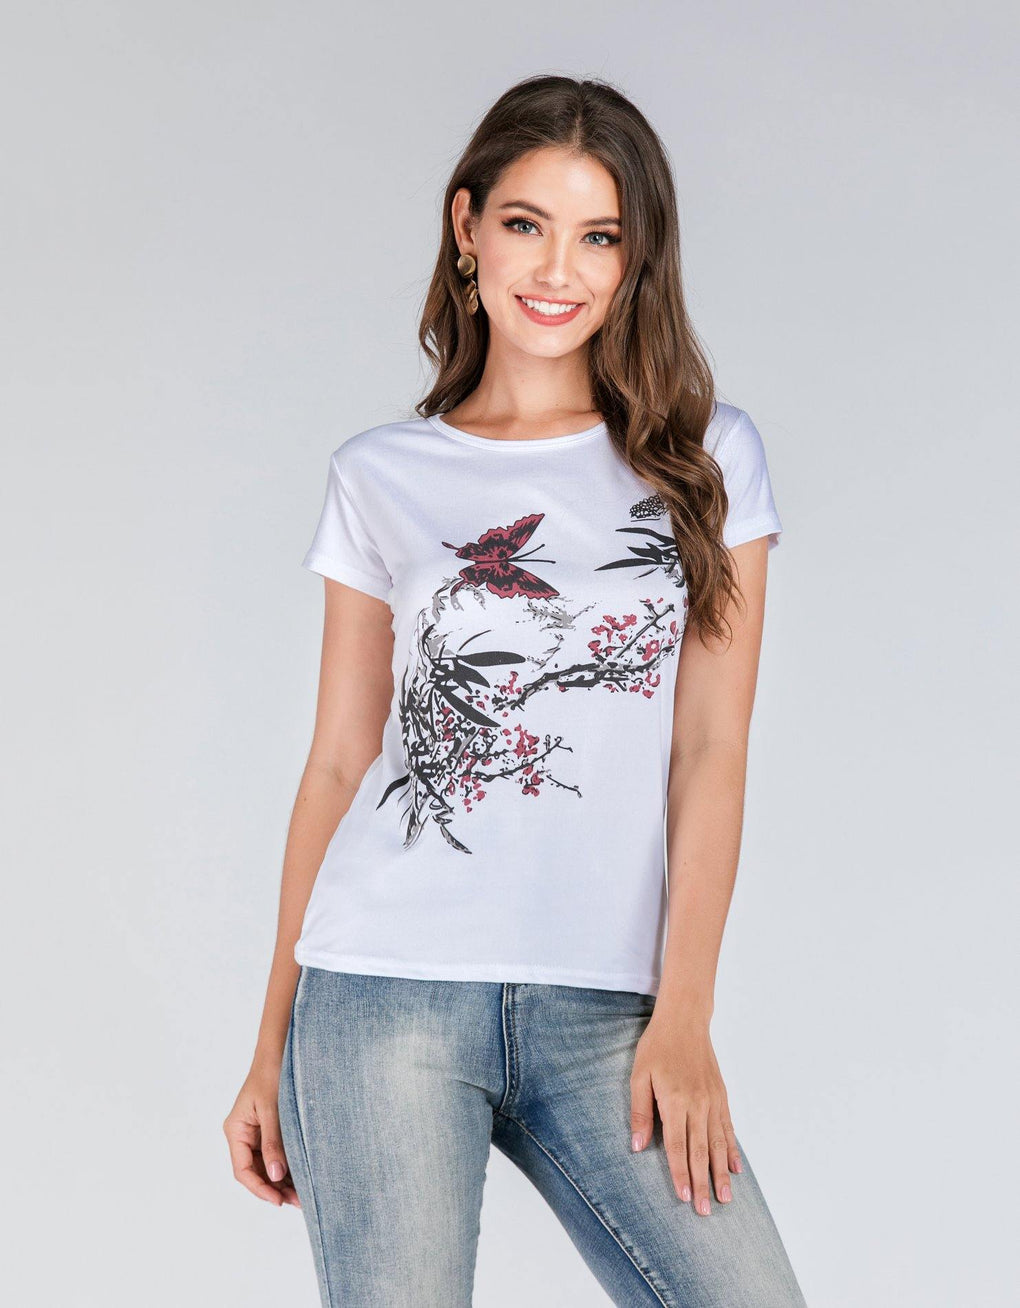 Flying Bird Tee